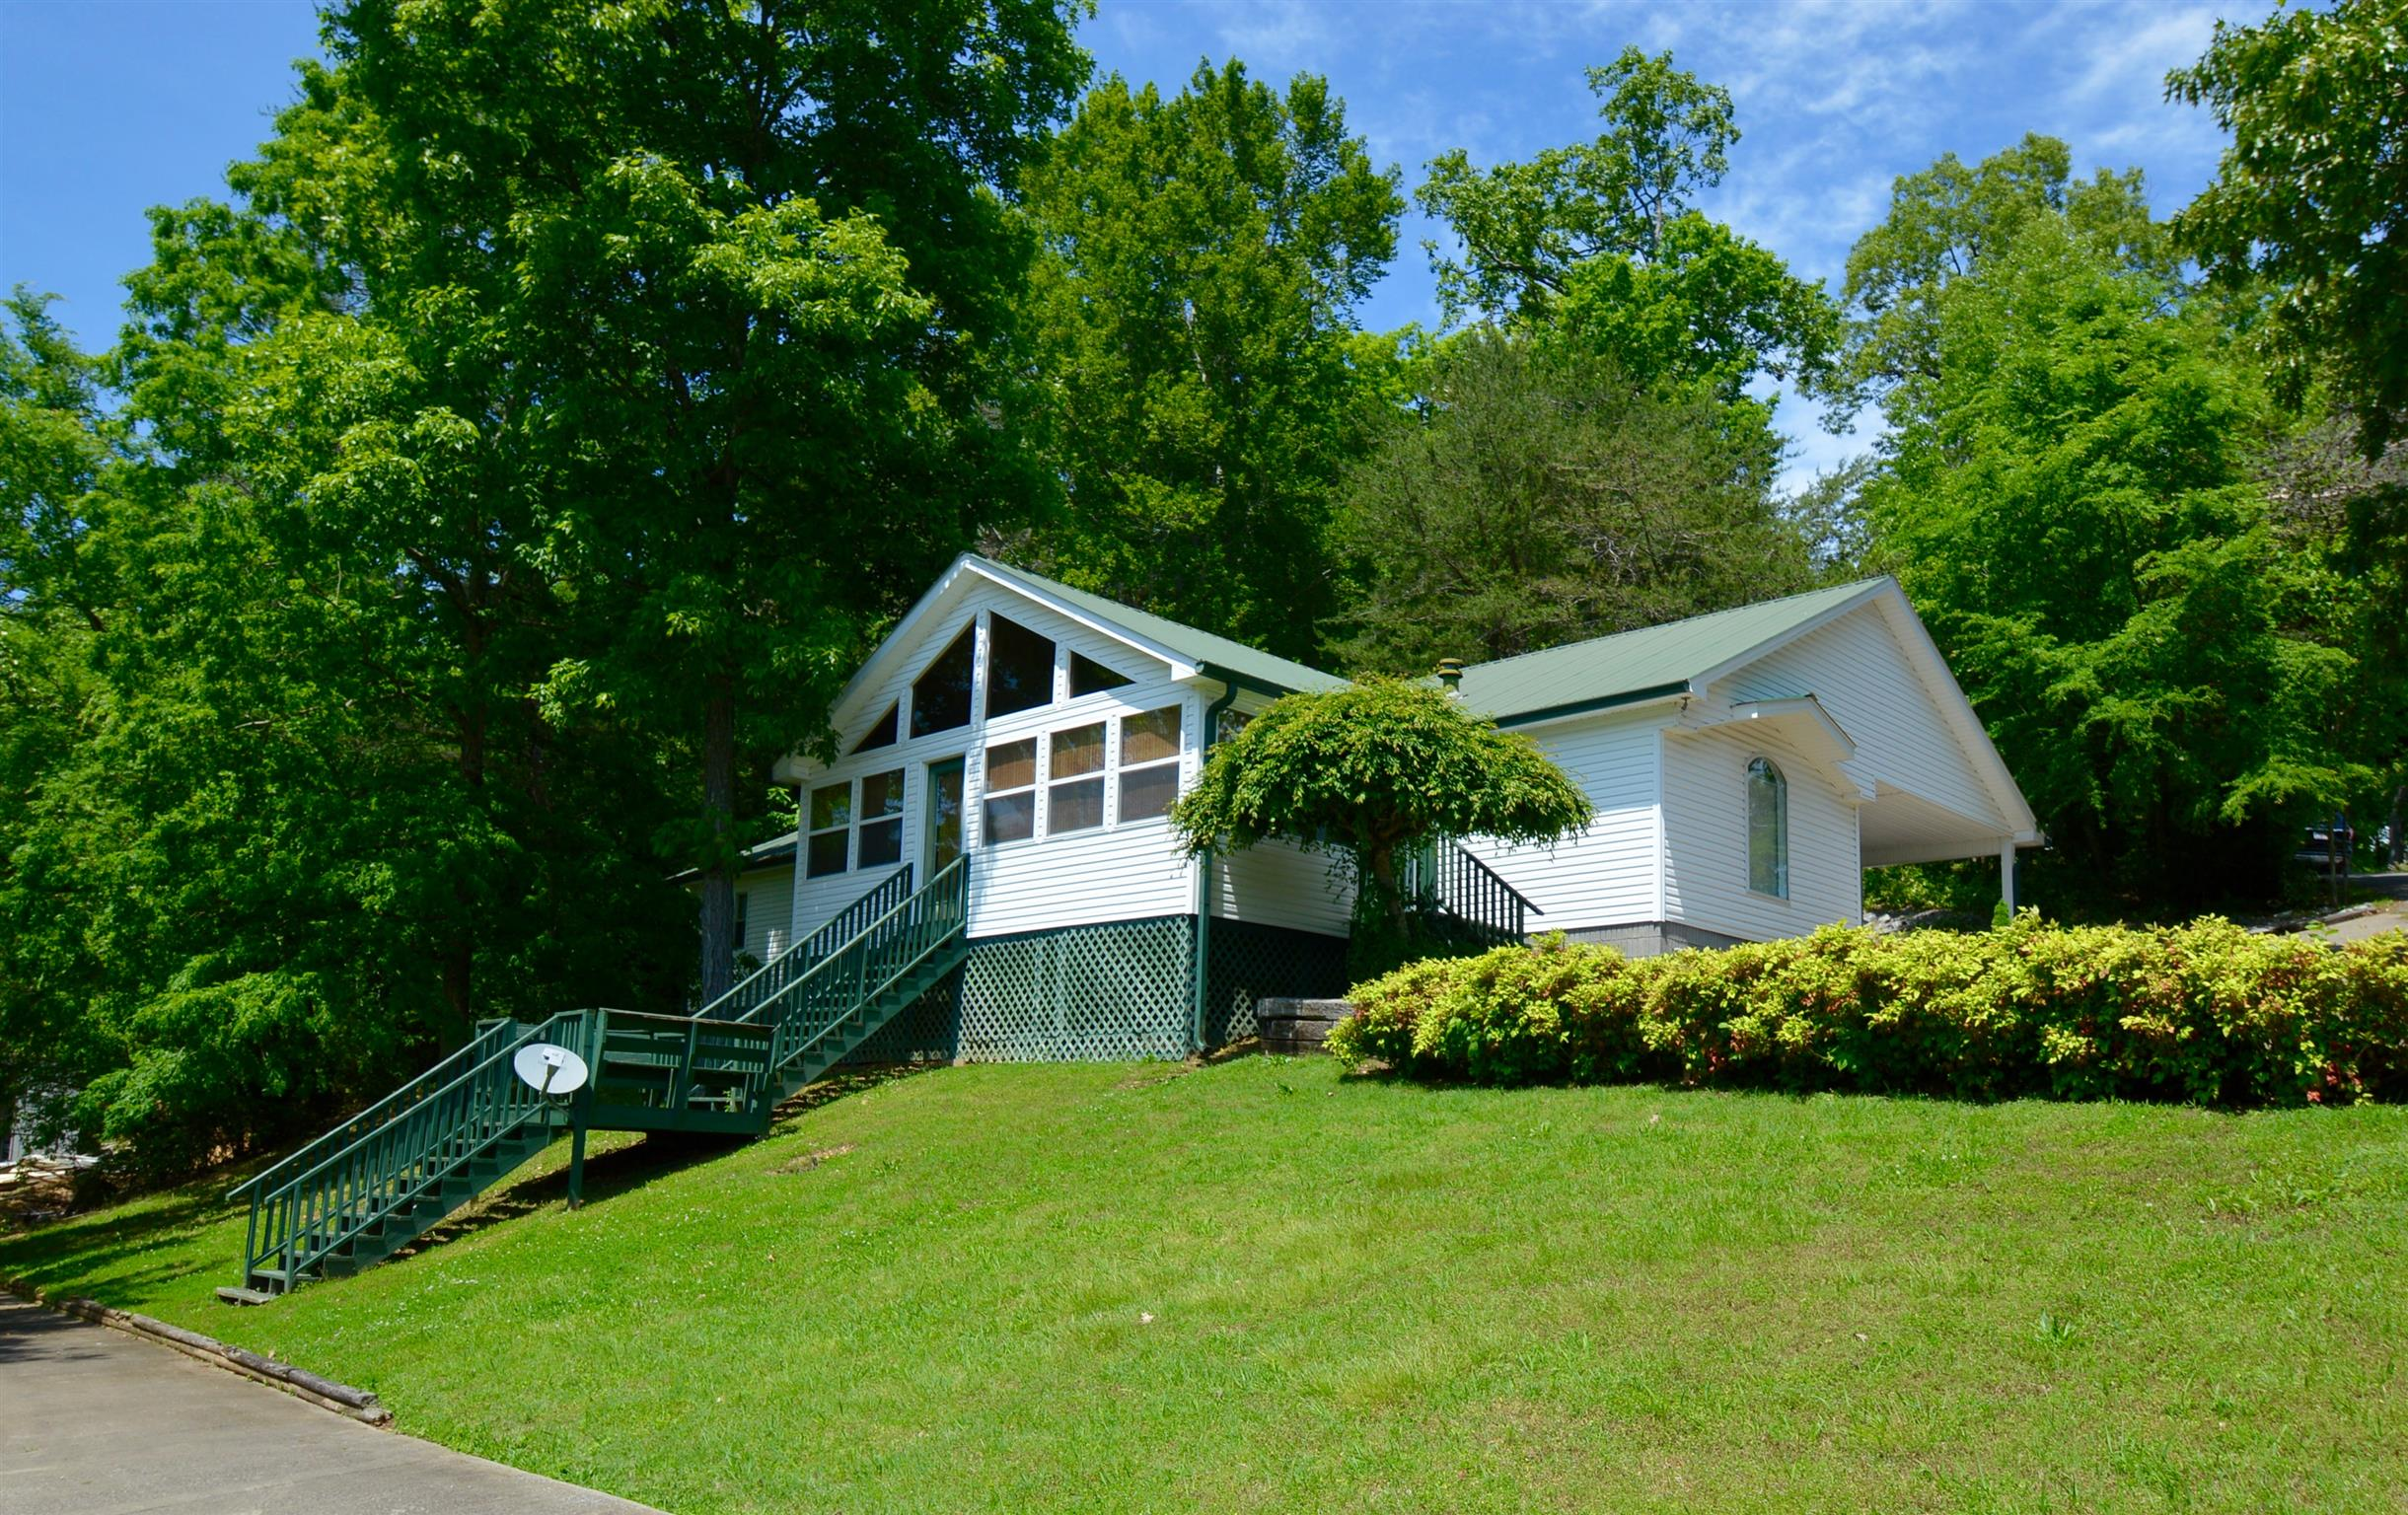 35 Lake Hill Dr, Waverly, TN 37185 - Waverly, TN real estate listing